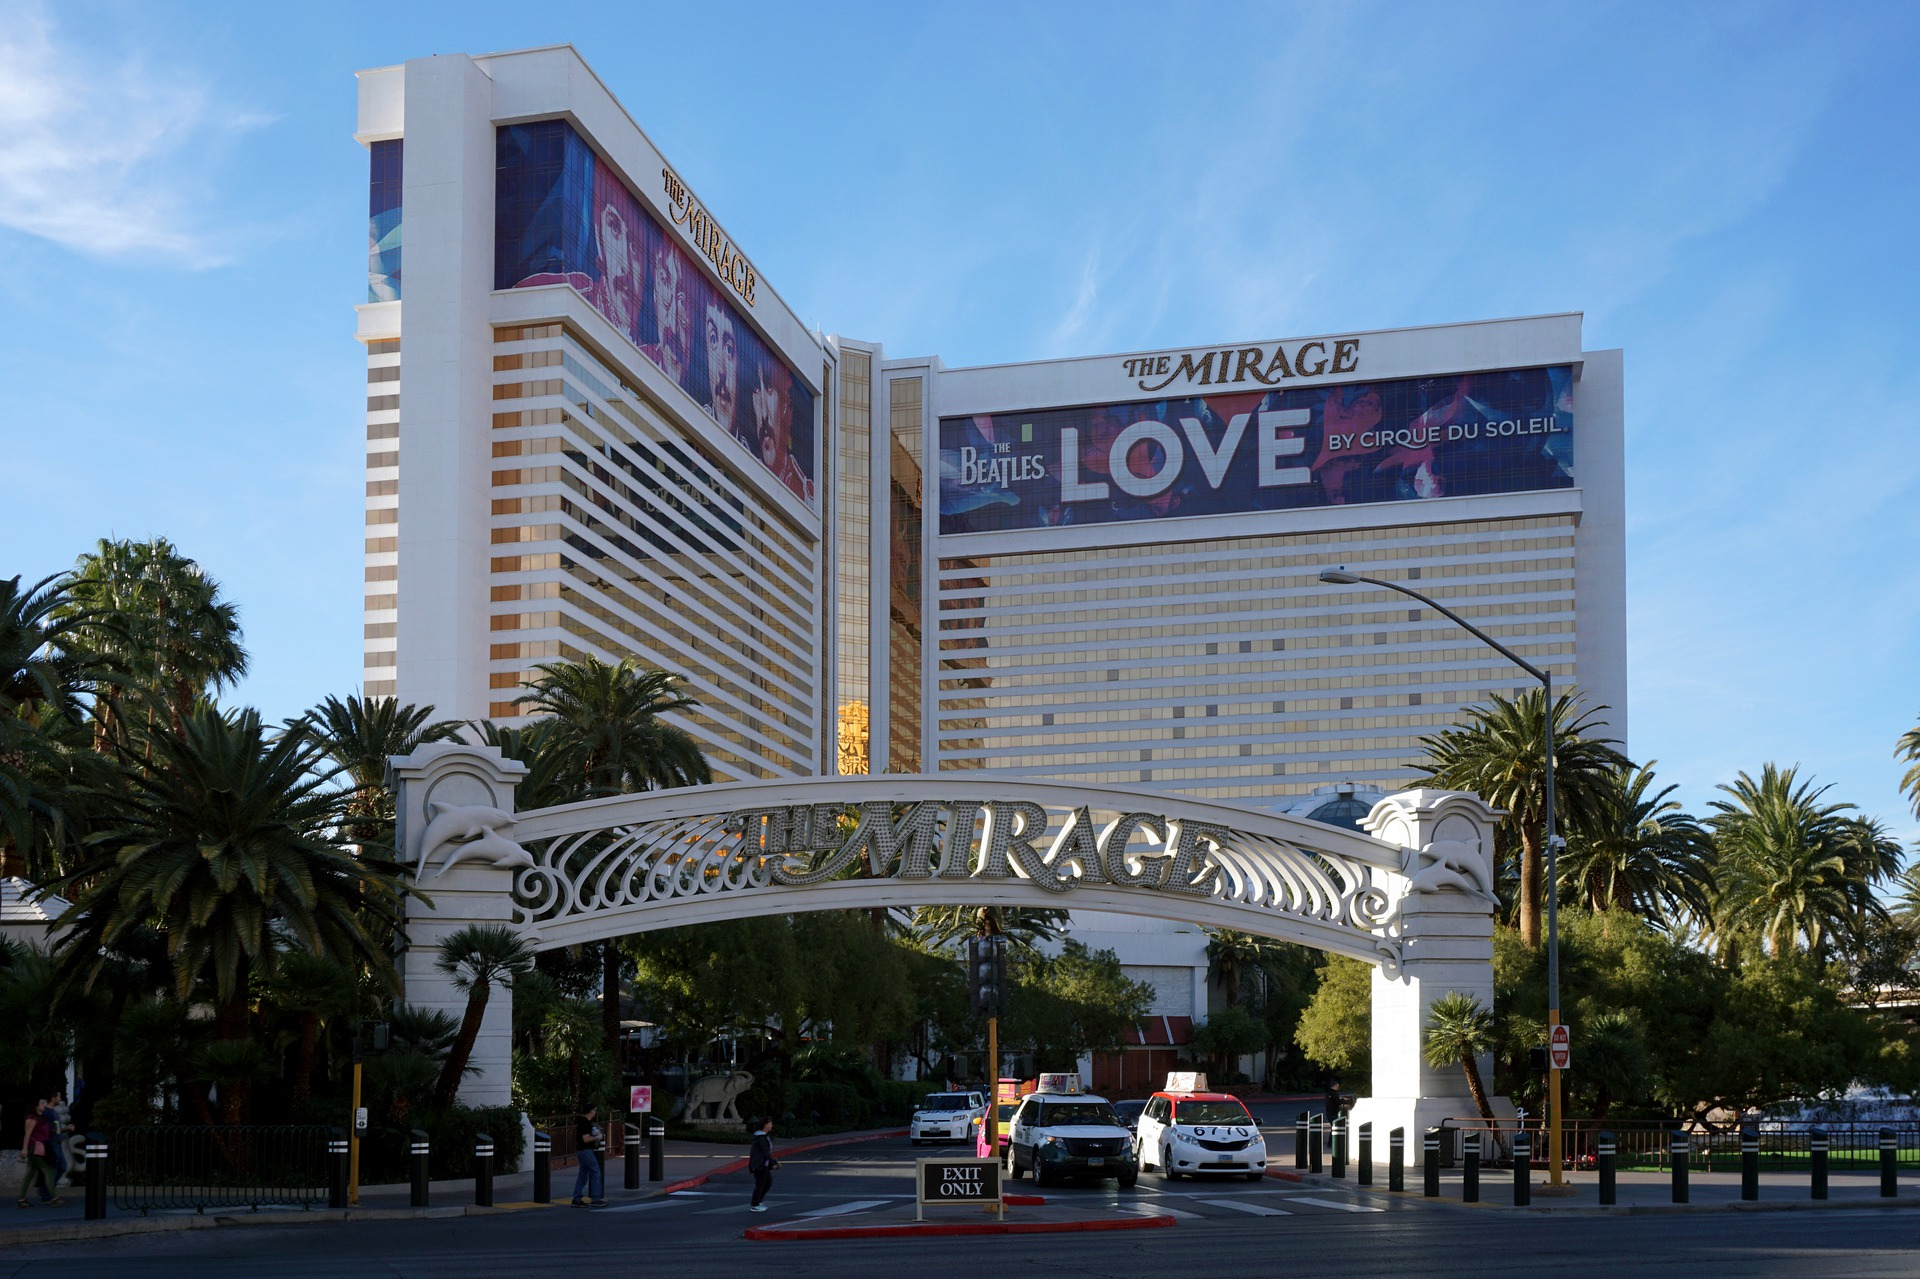 LOVE show at The Mirage, Las Vegas